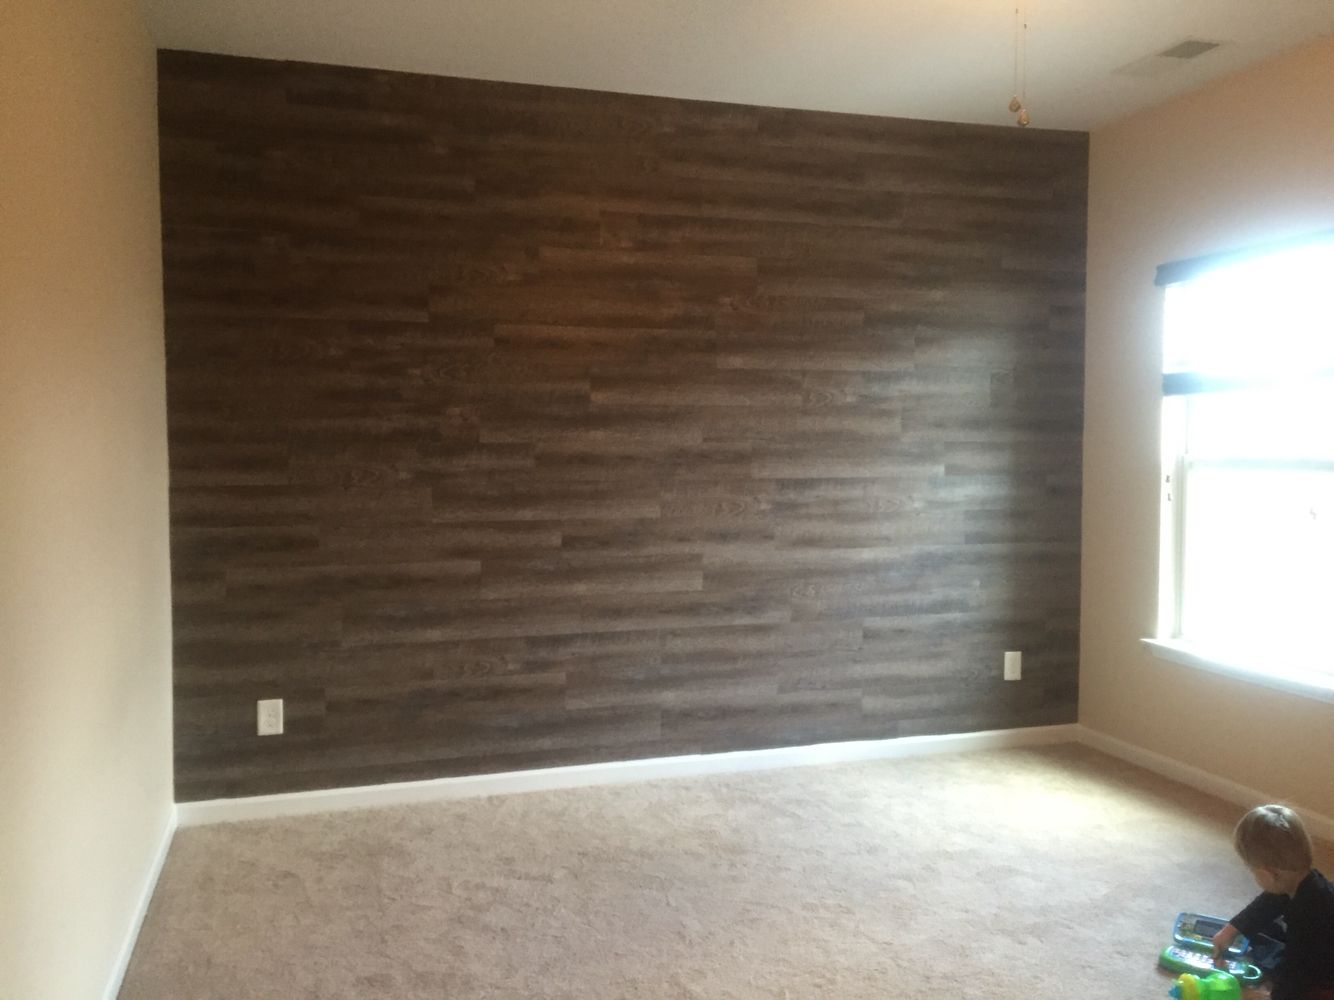 Vinyl Peel And Stick Hardwood For An Accent Wall In Baby